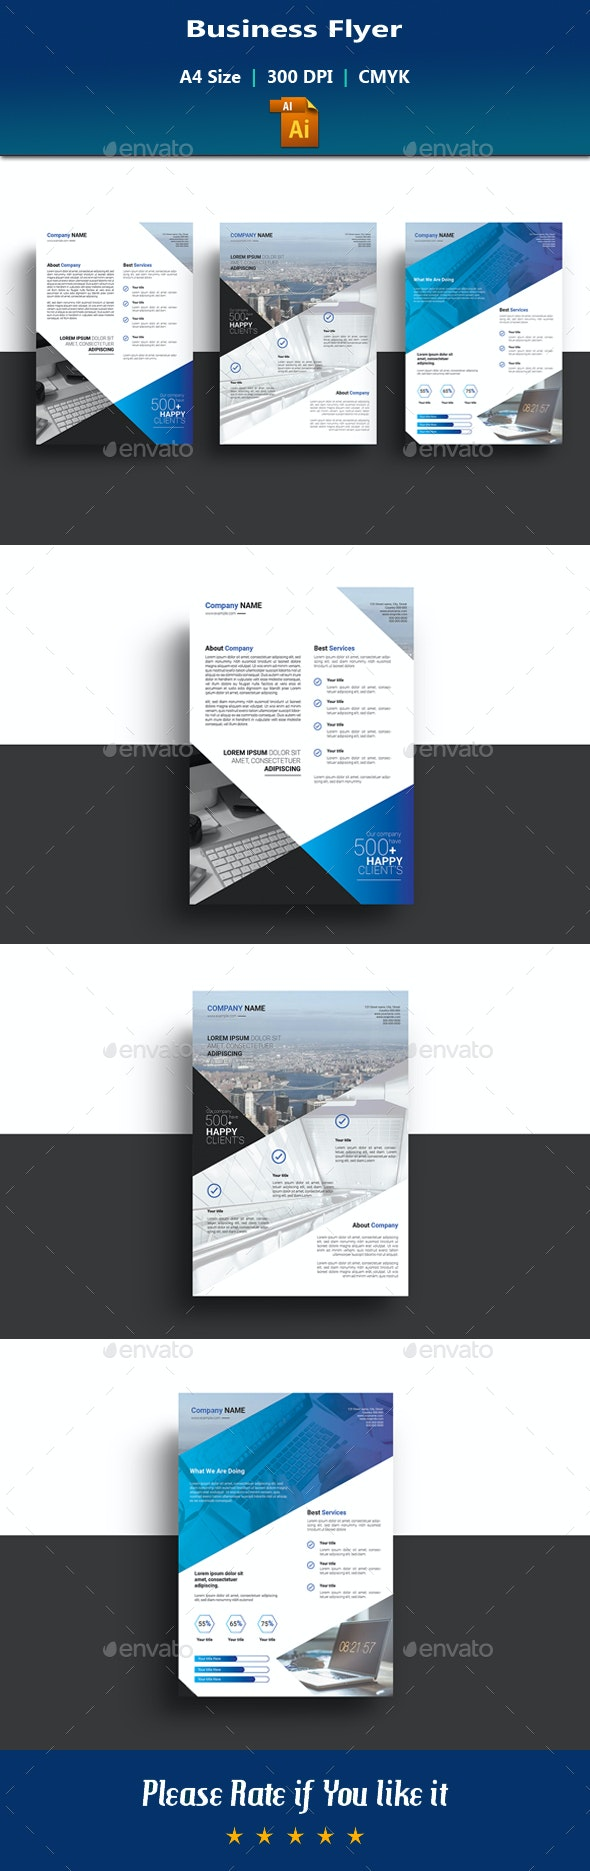 Business Flyer V12 - Corporate Flyers